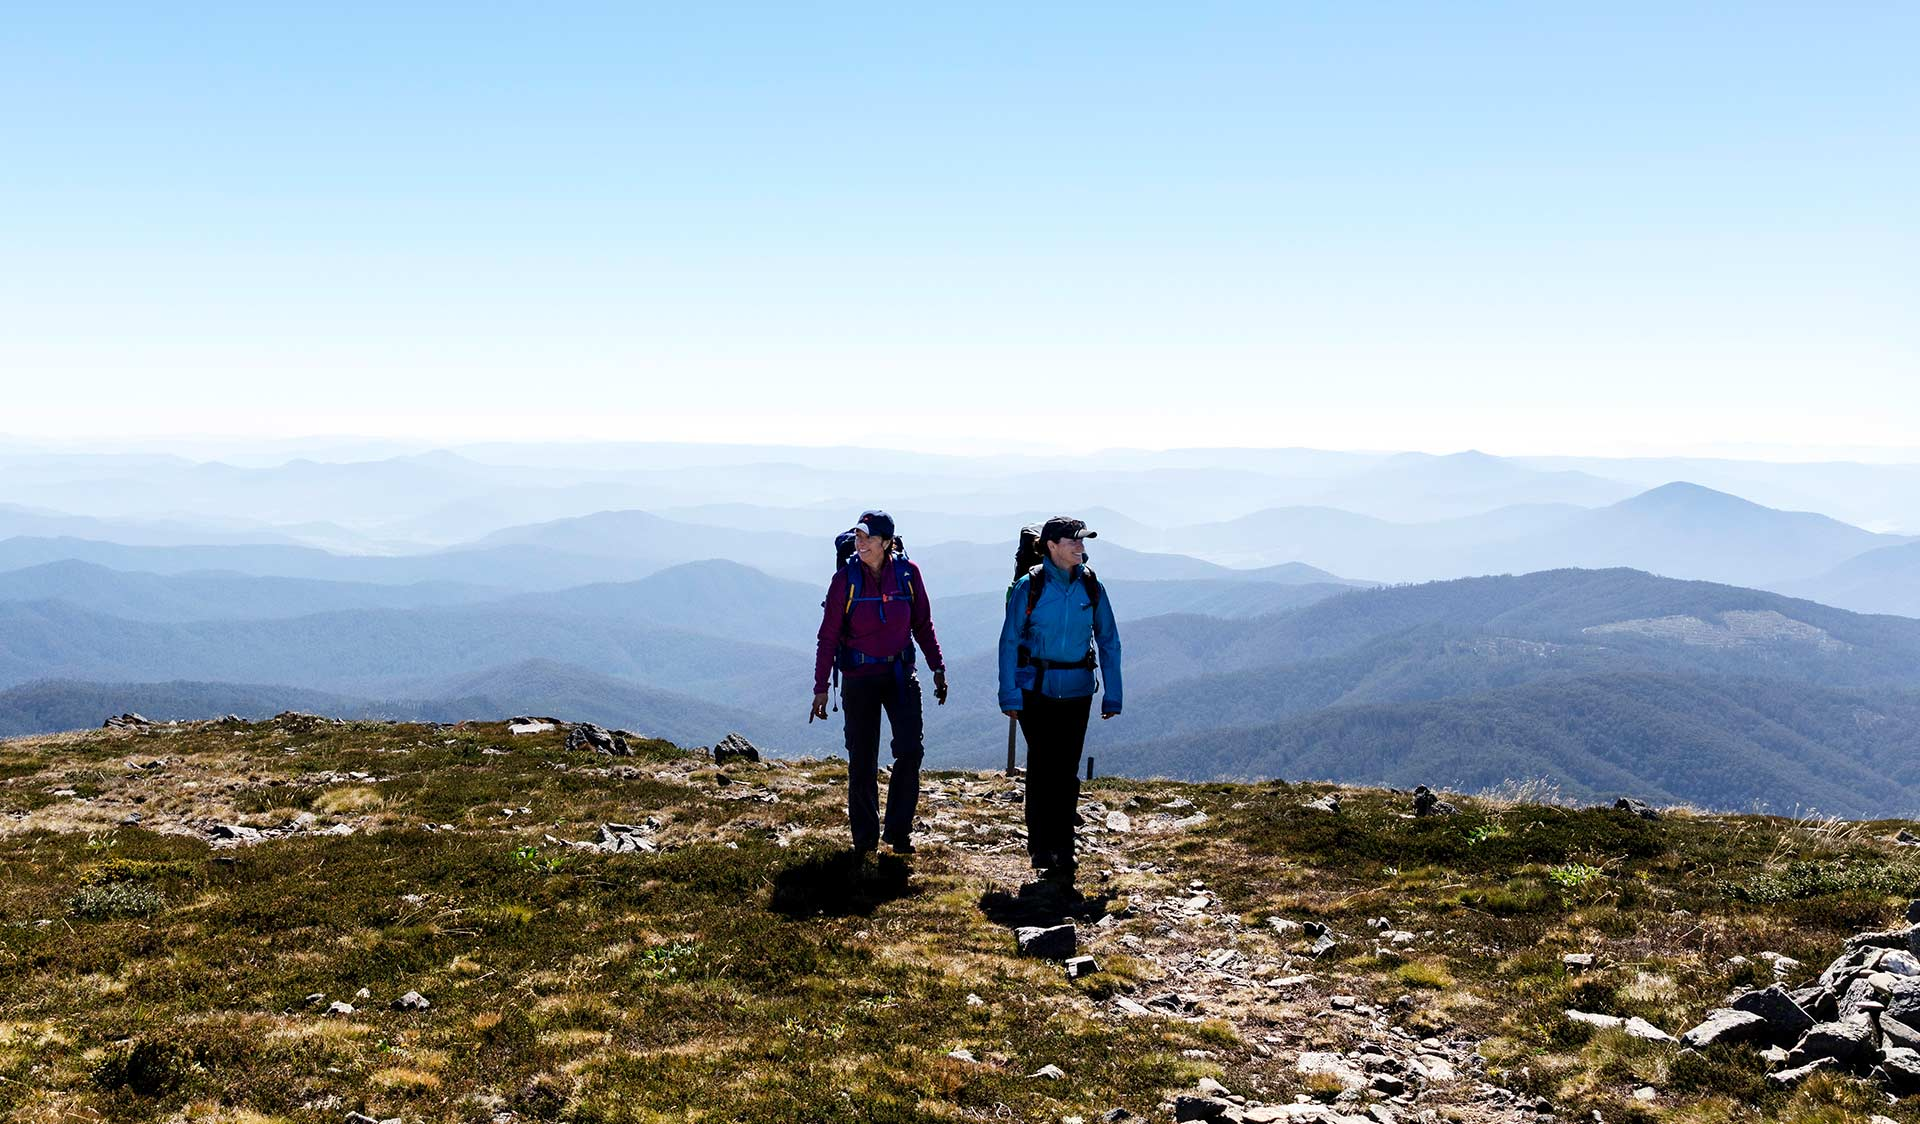 Two women hiking with a panoramic view of the mountains behind them at Alpine National Park